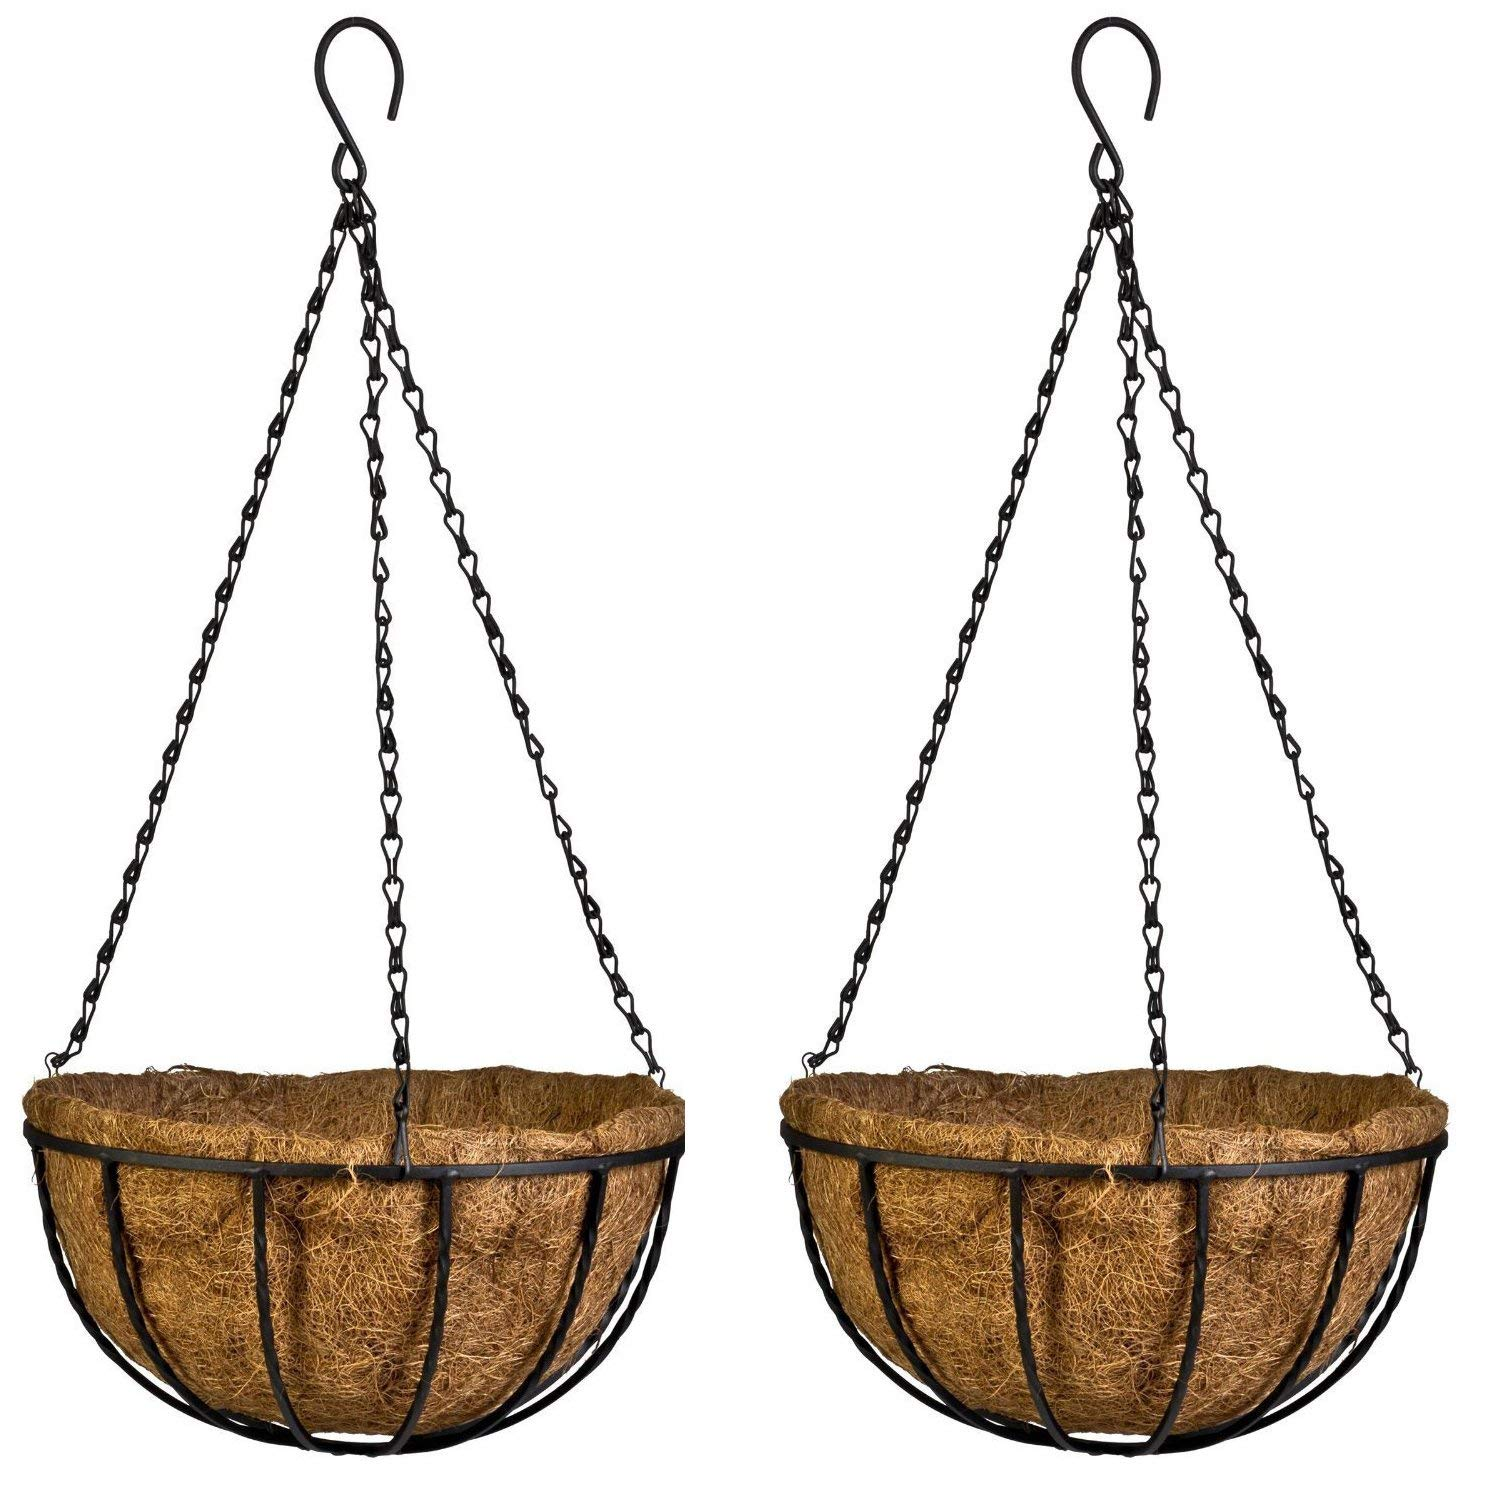 Vanze 2 Pack Hanging Basket Planter with Coco Coir Liner 10 Inch Round Wire Plant Holder with Chain Porch Decor Flower Pots Hanger Garden Decoration Indoor Outdoor Watering Hanging Baskets